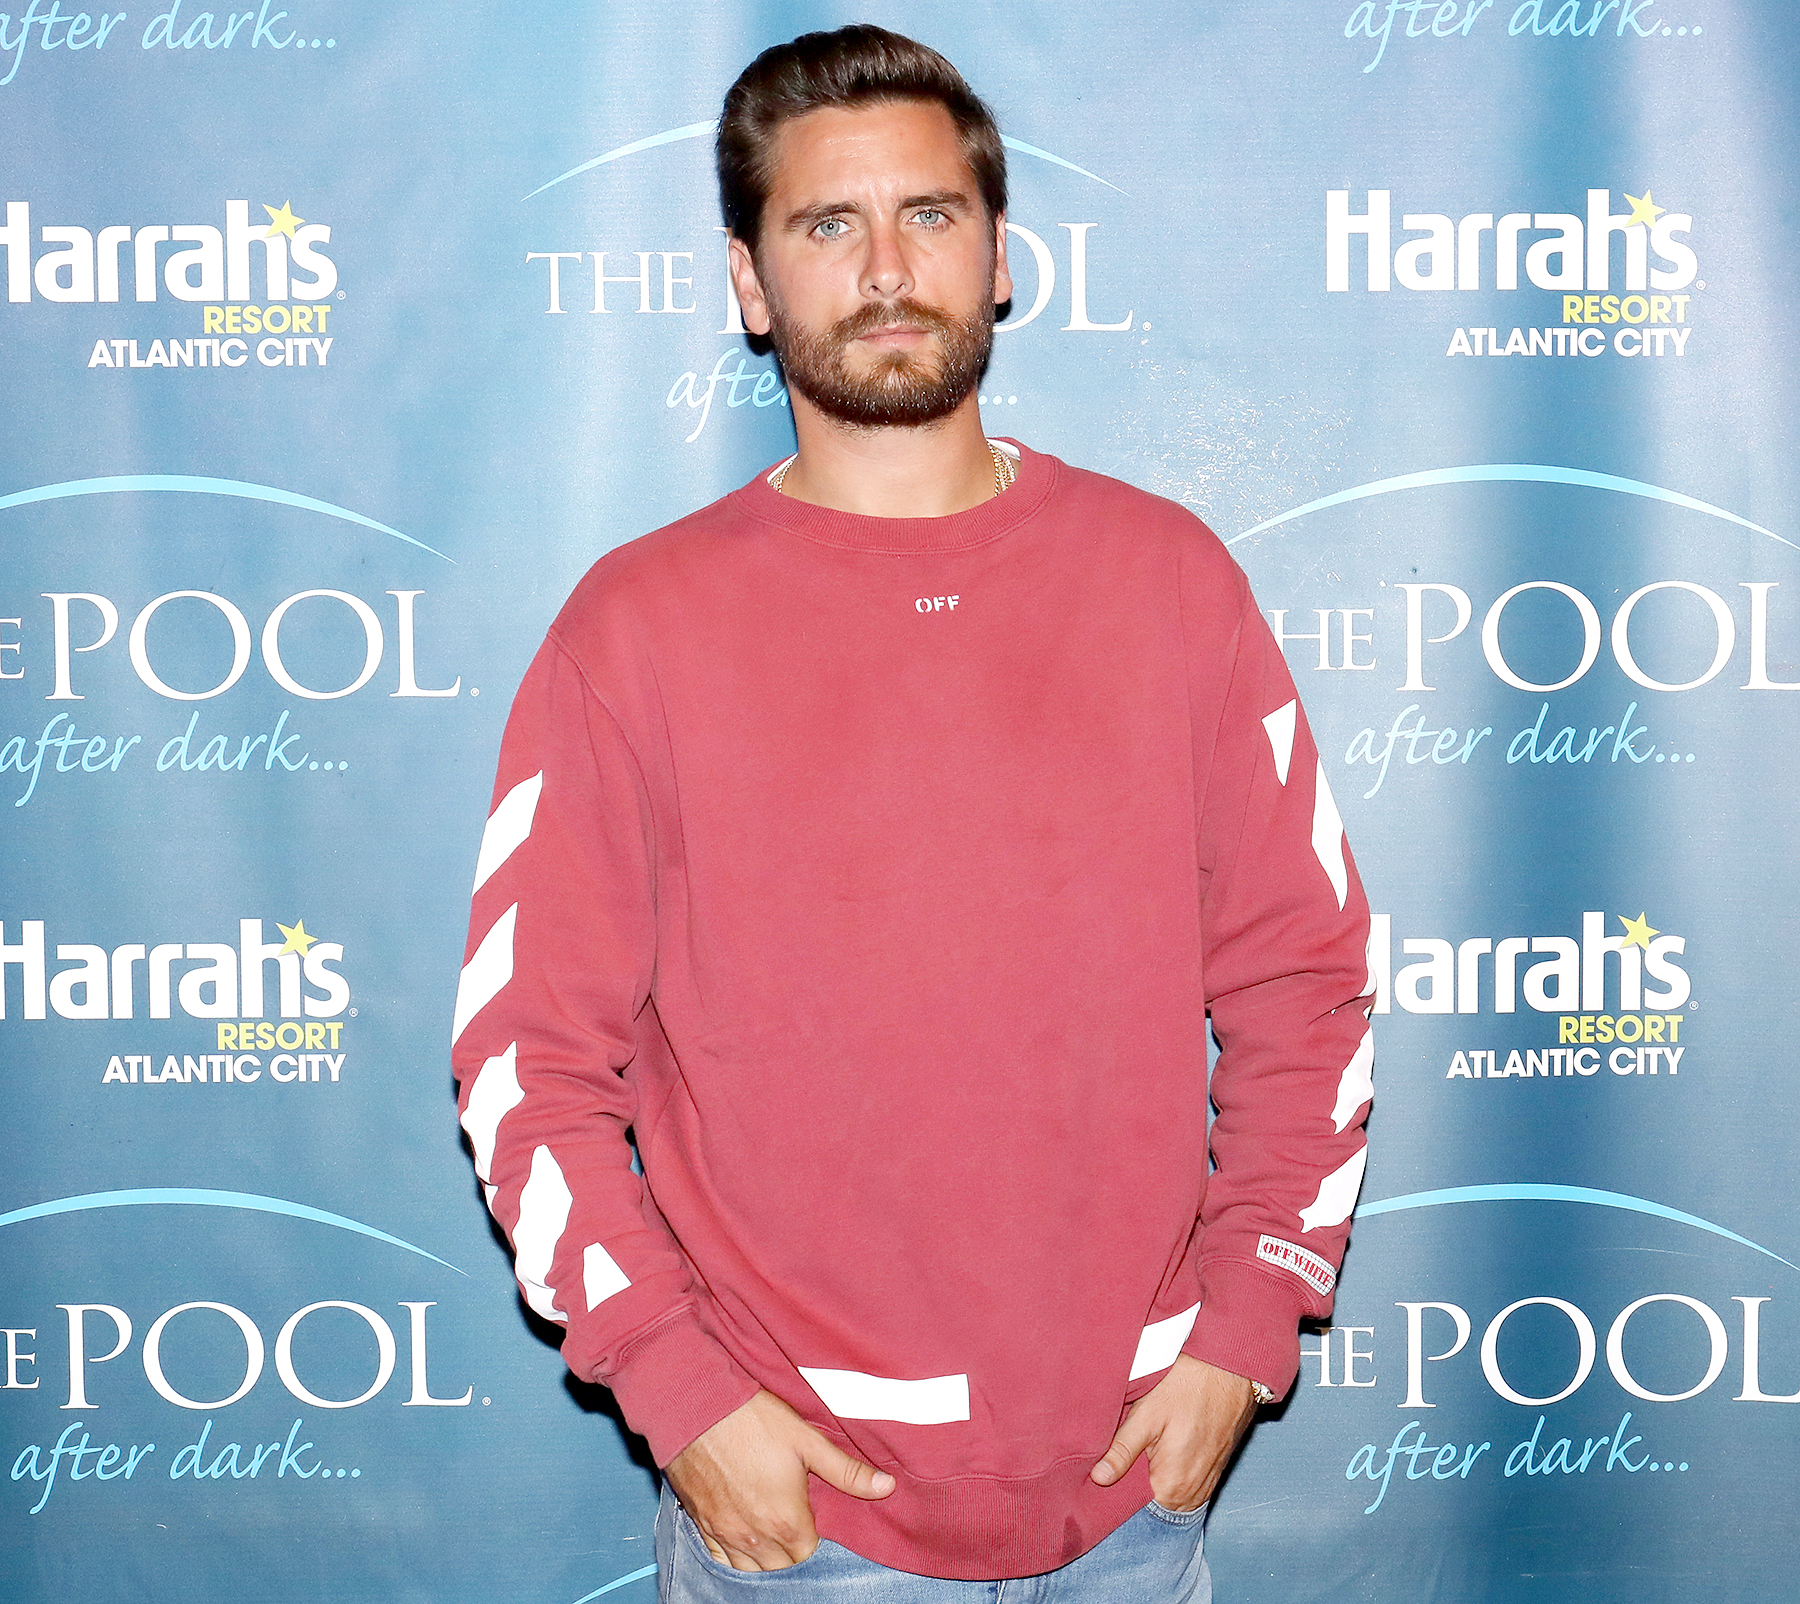 Scott Disick hosts The Pool After Dark at Harrah's Resort in Atlantic City, New Jersey, on August 4, 2017.